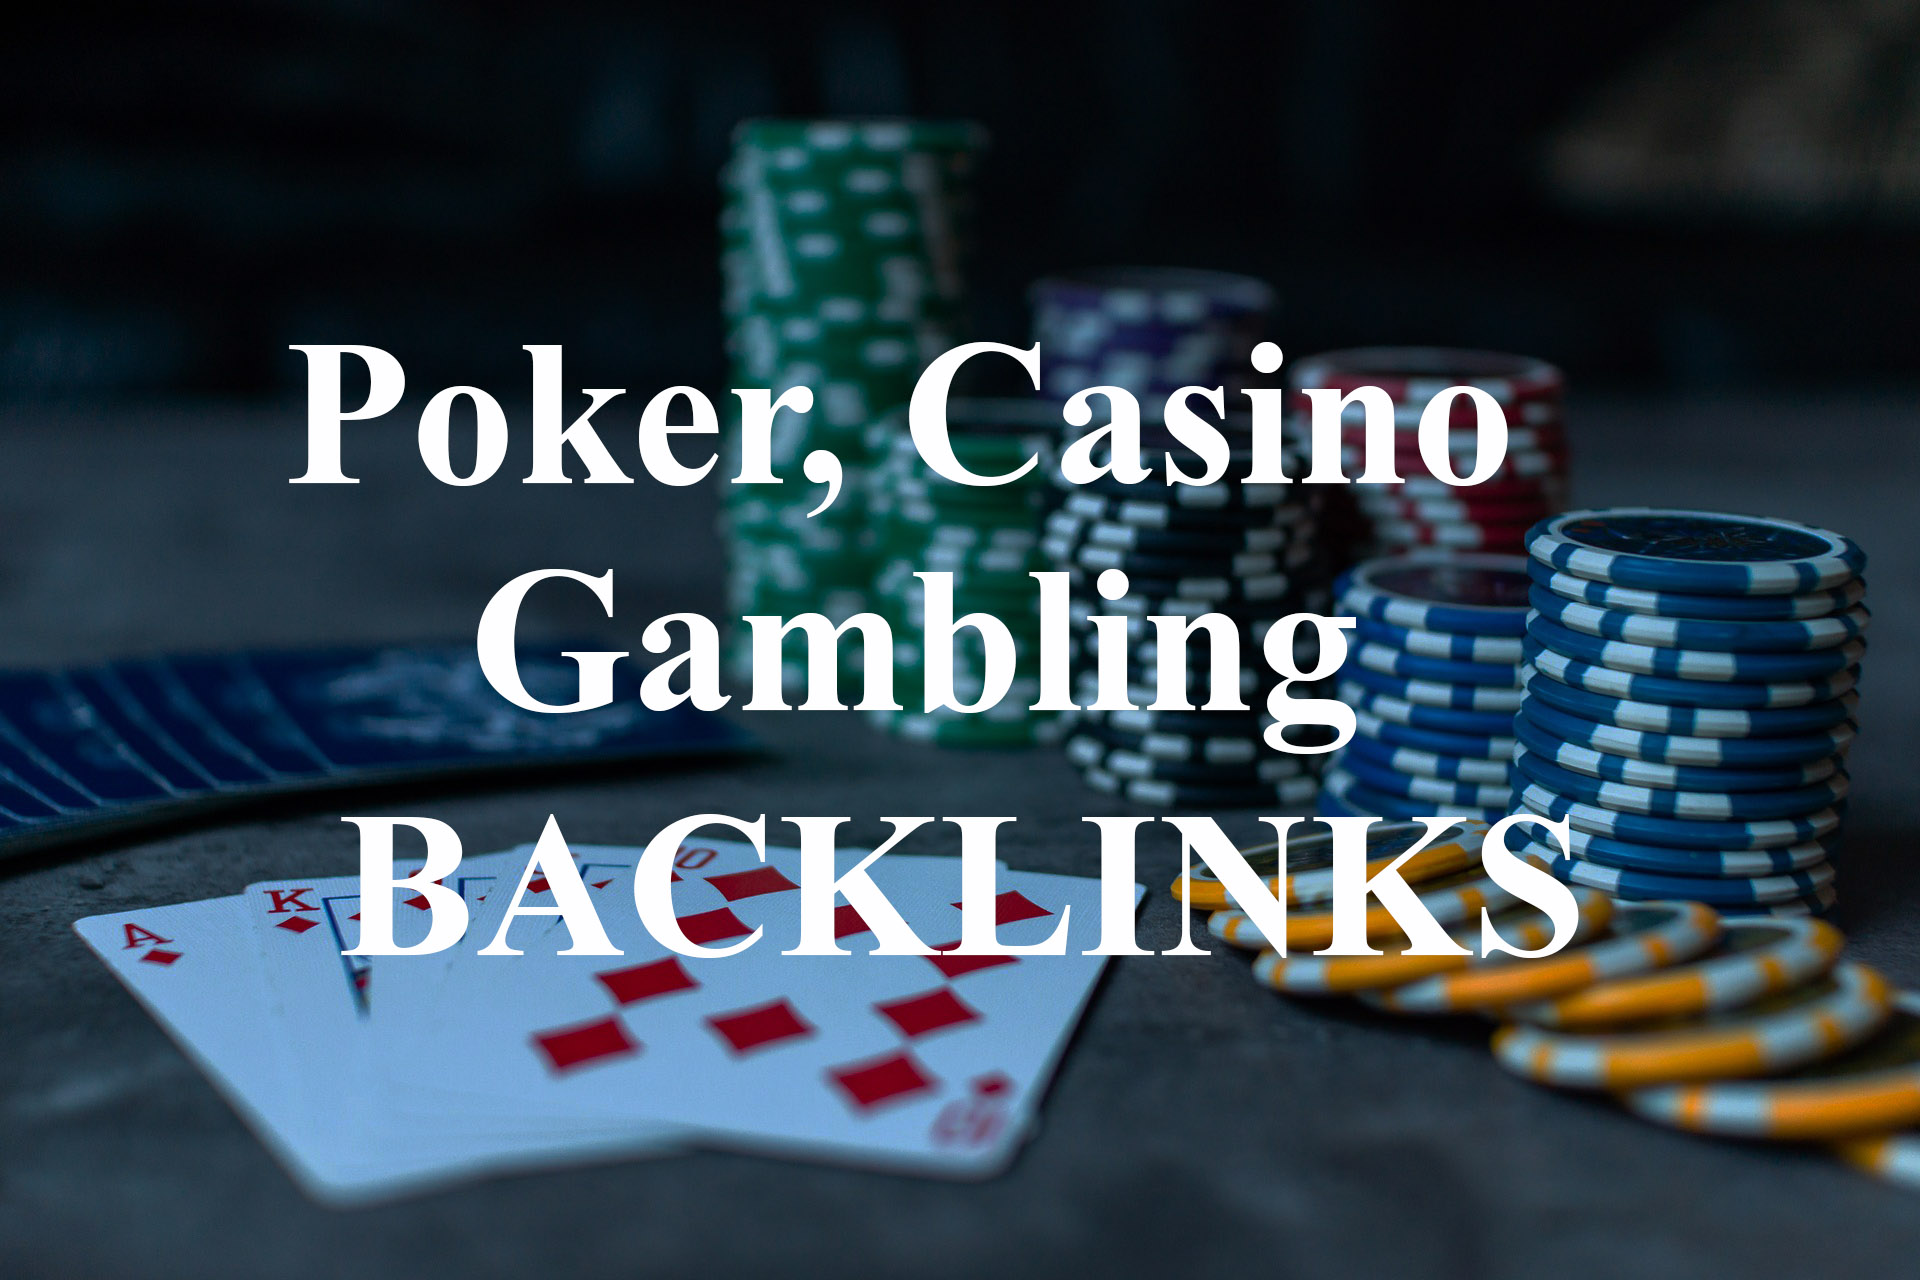 2500 poker,  casino and gambling pbn backlinks